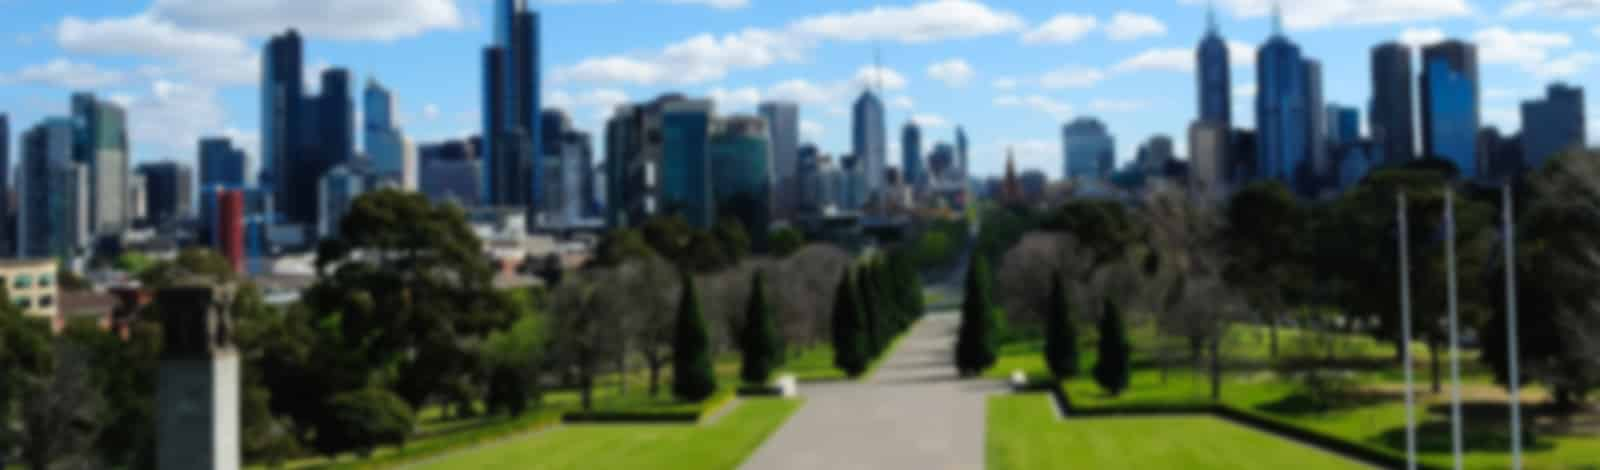 Melbourne outdoor exercise area with Melbourne skyline blurred